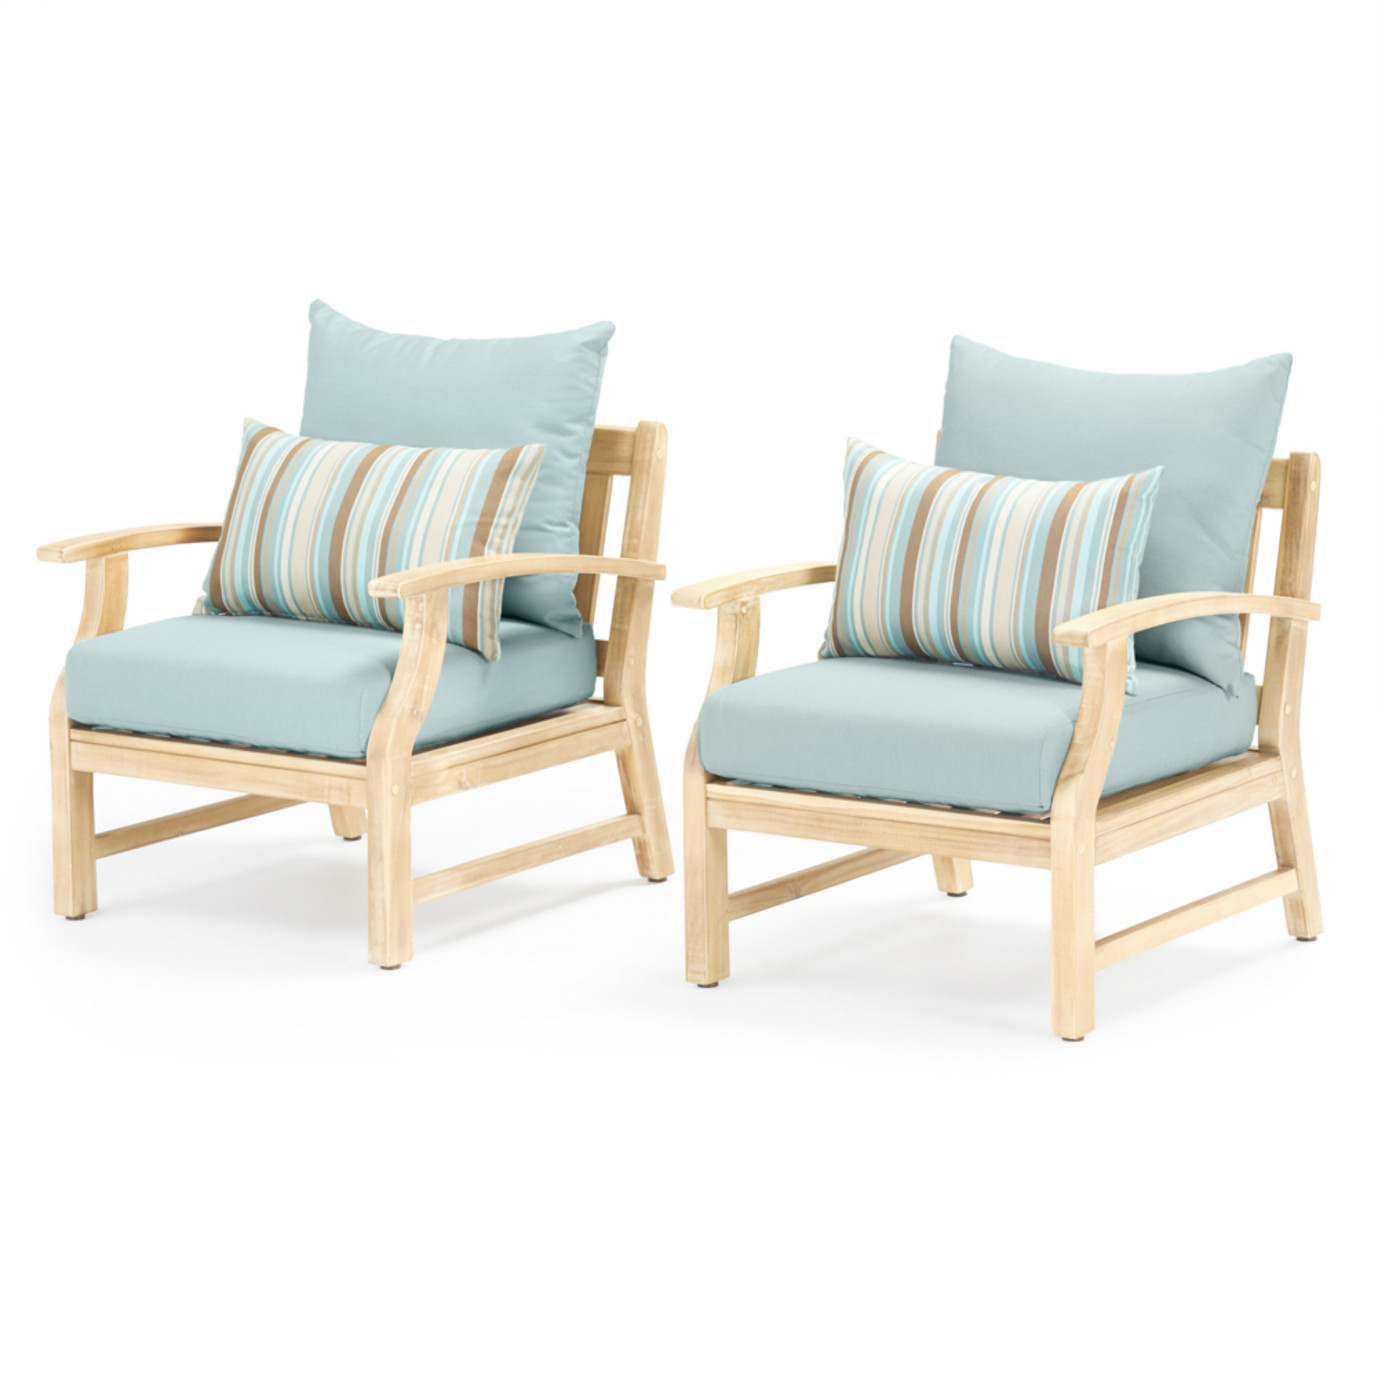 Kooper Club Chairs - Bliss Blue